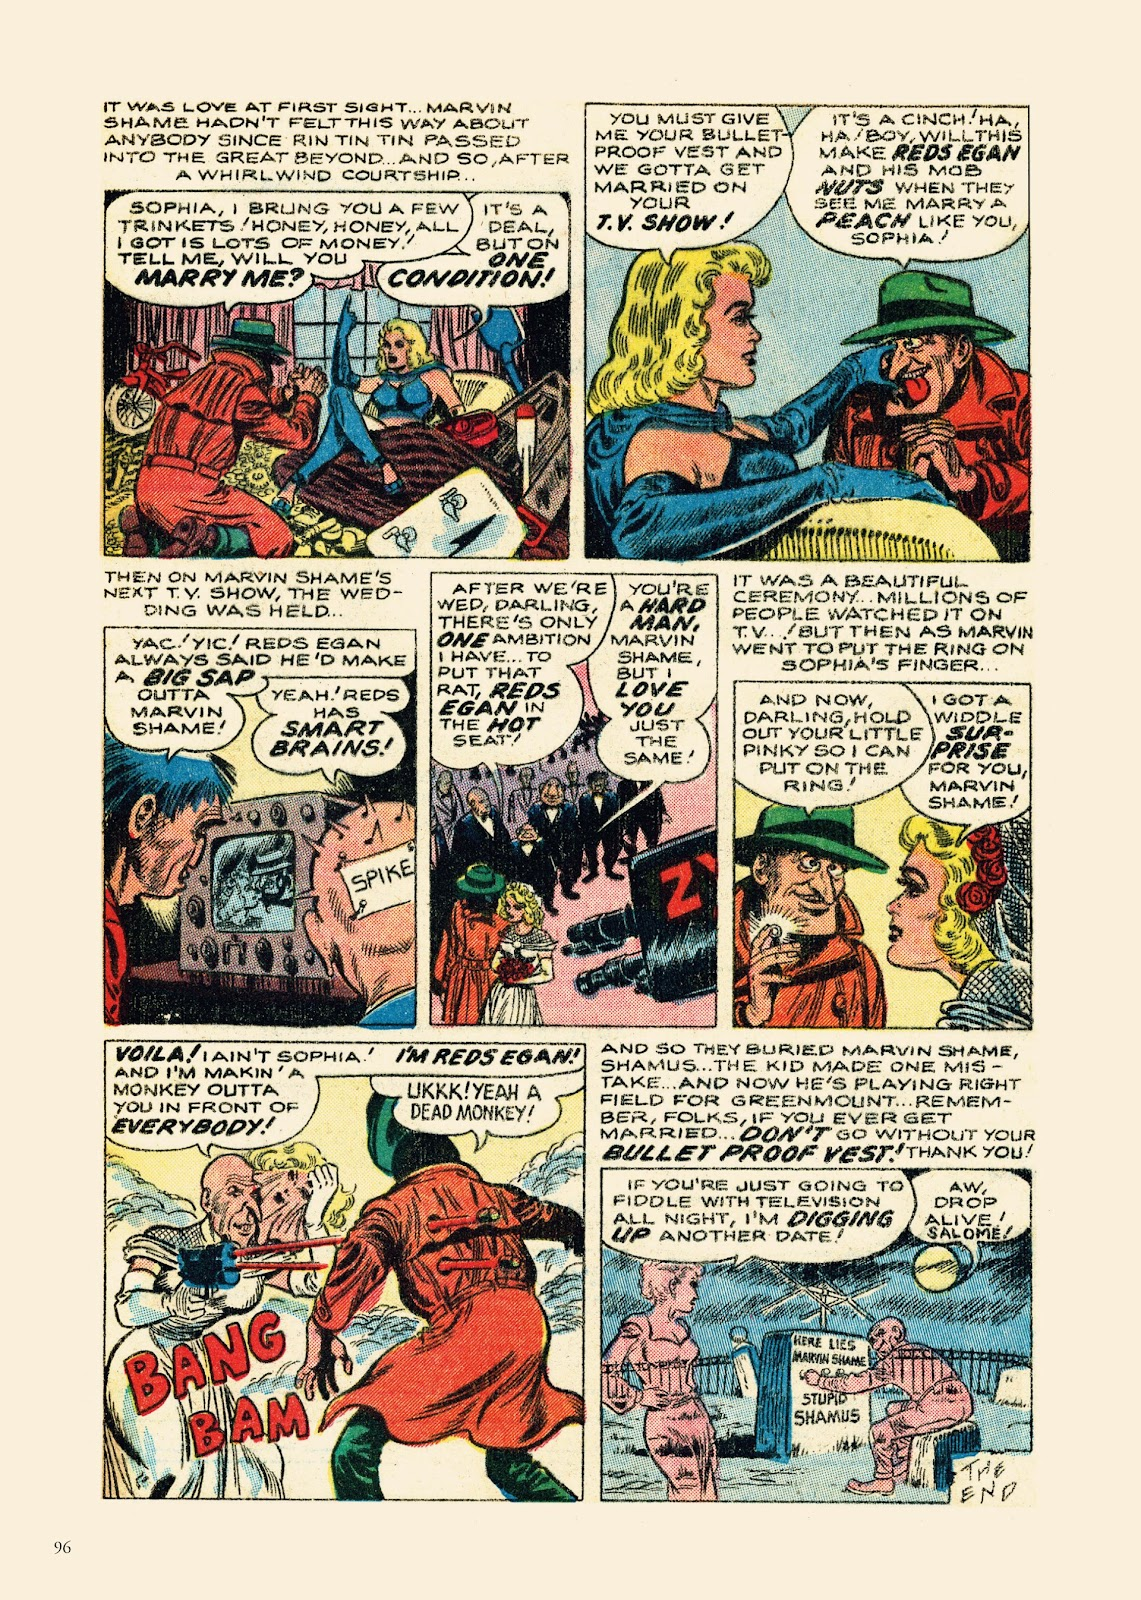 Read online Sincerest Form of Parody: The Best 1950s MAD-Inspired Satirical Comics comic -  Issue # TPB (Part 1) - 97